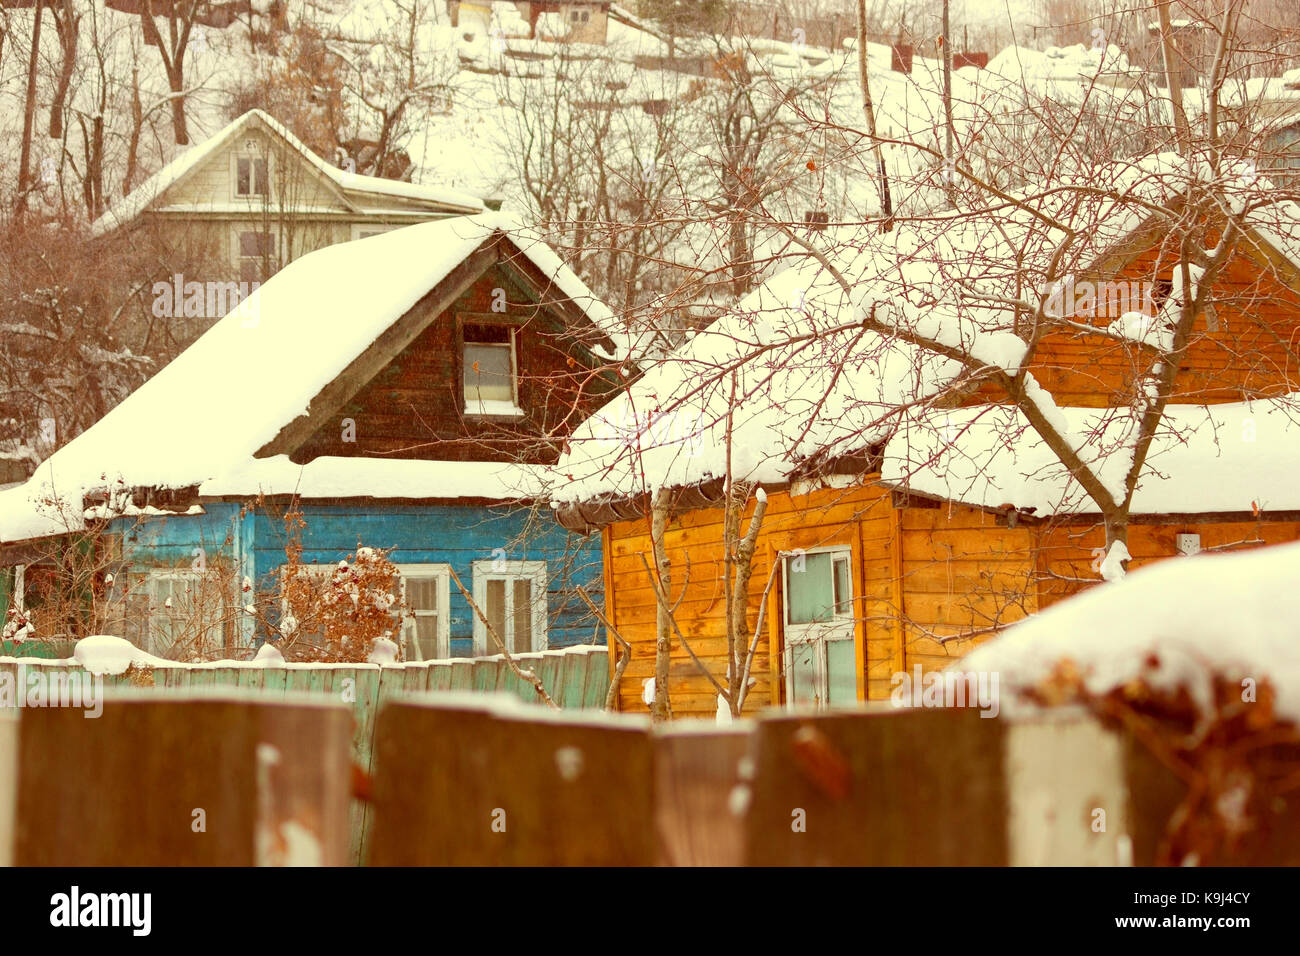 Snow house in winter dreamland at dawn in forest old weather and a lot of snow on roof Stock Photo